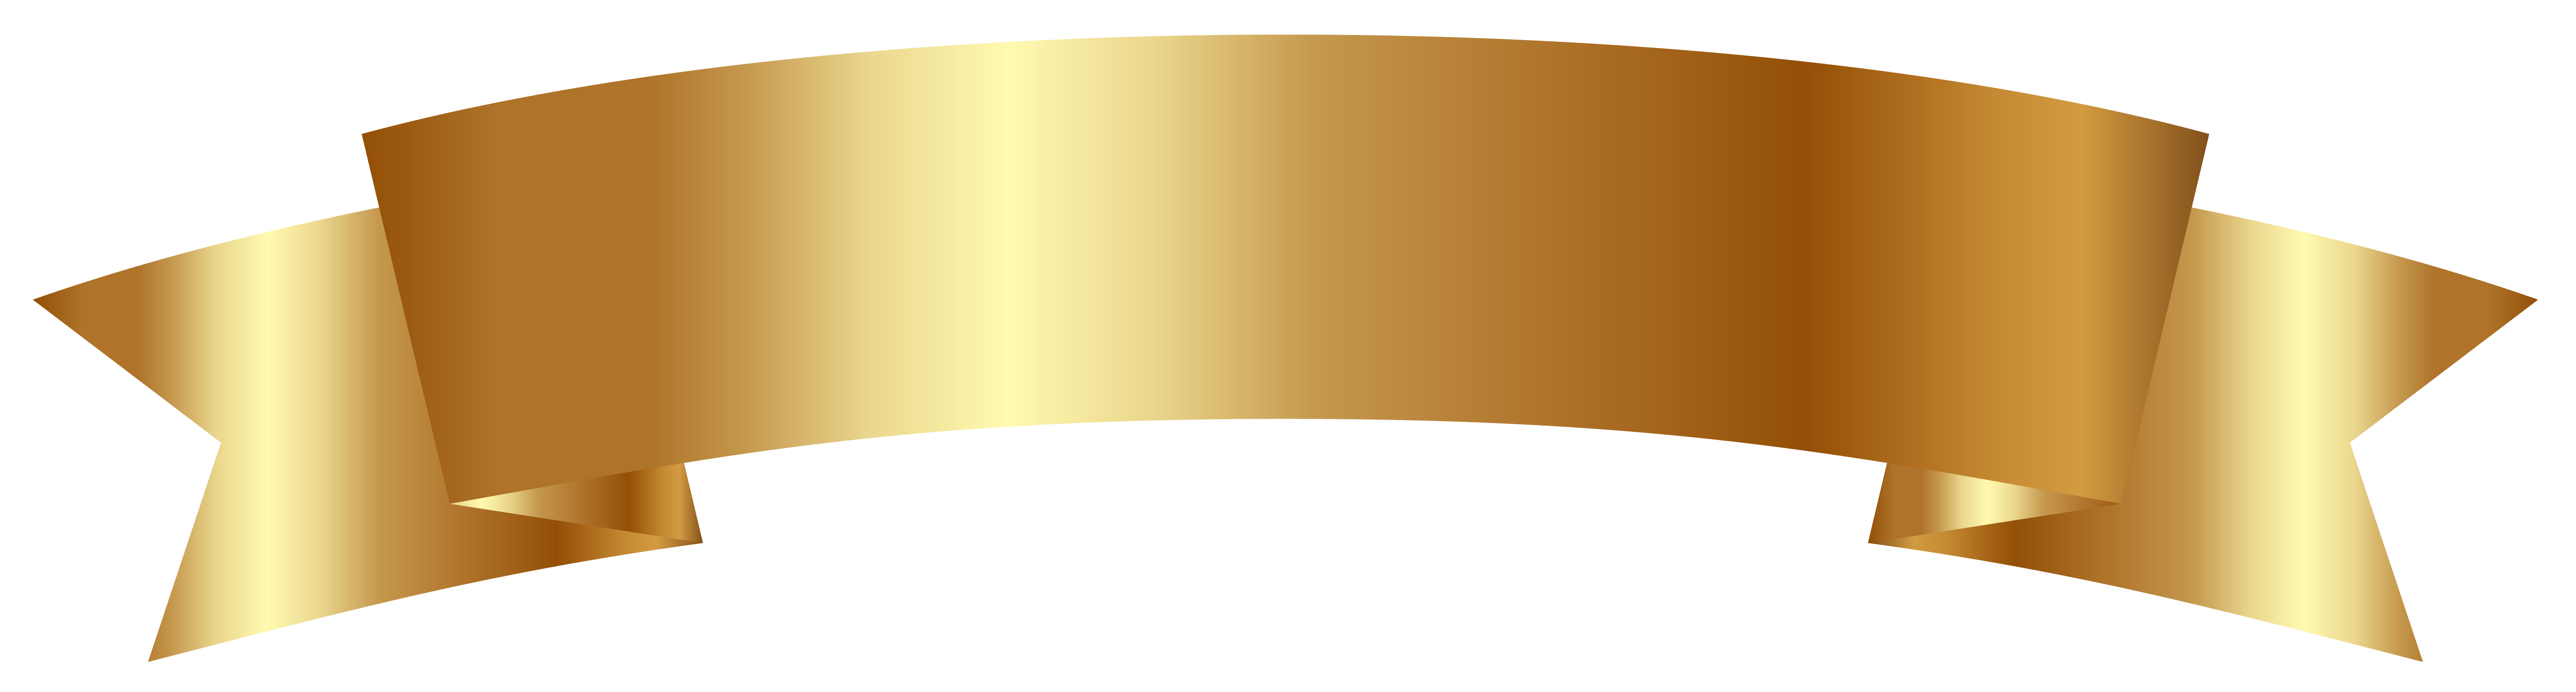 Gold ribbon png. Banner clipart image gallery